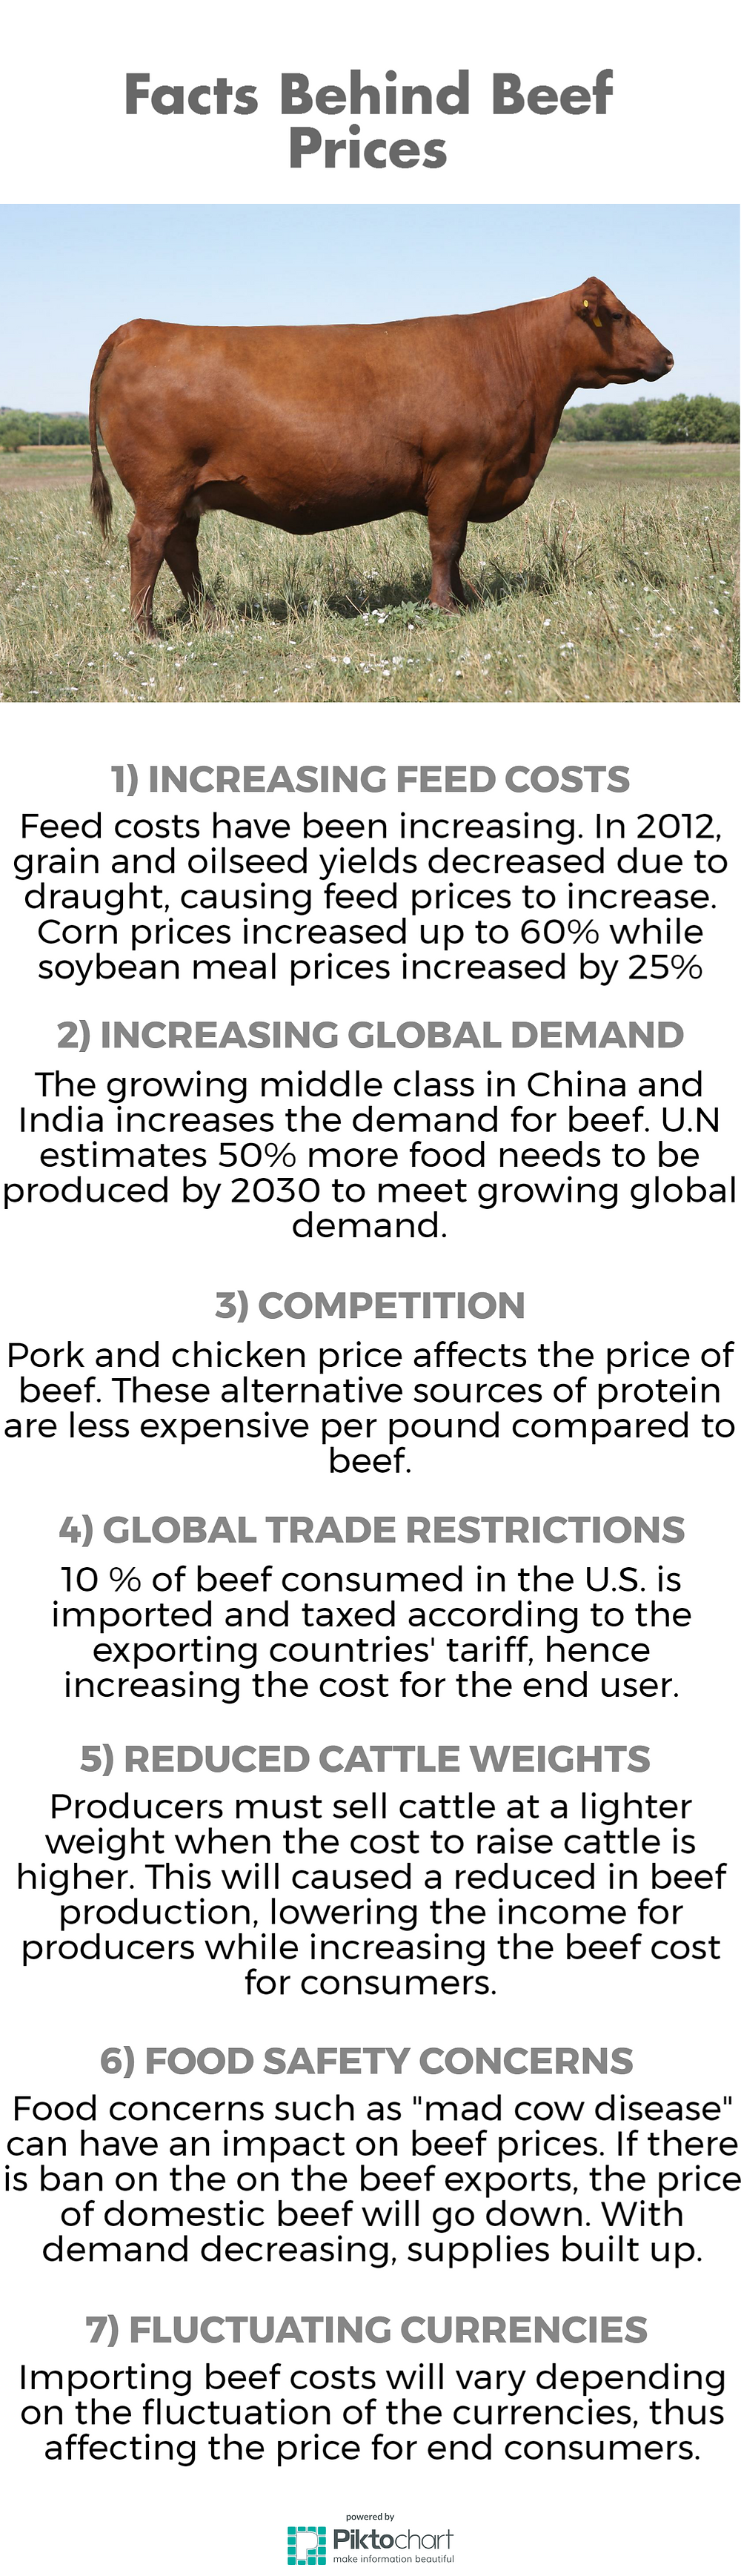 Facts Behind Beef Prices